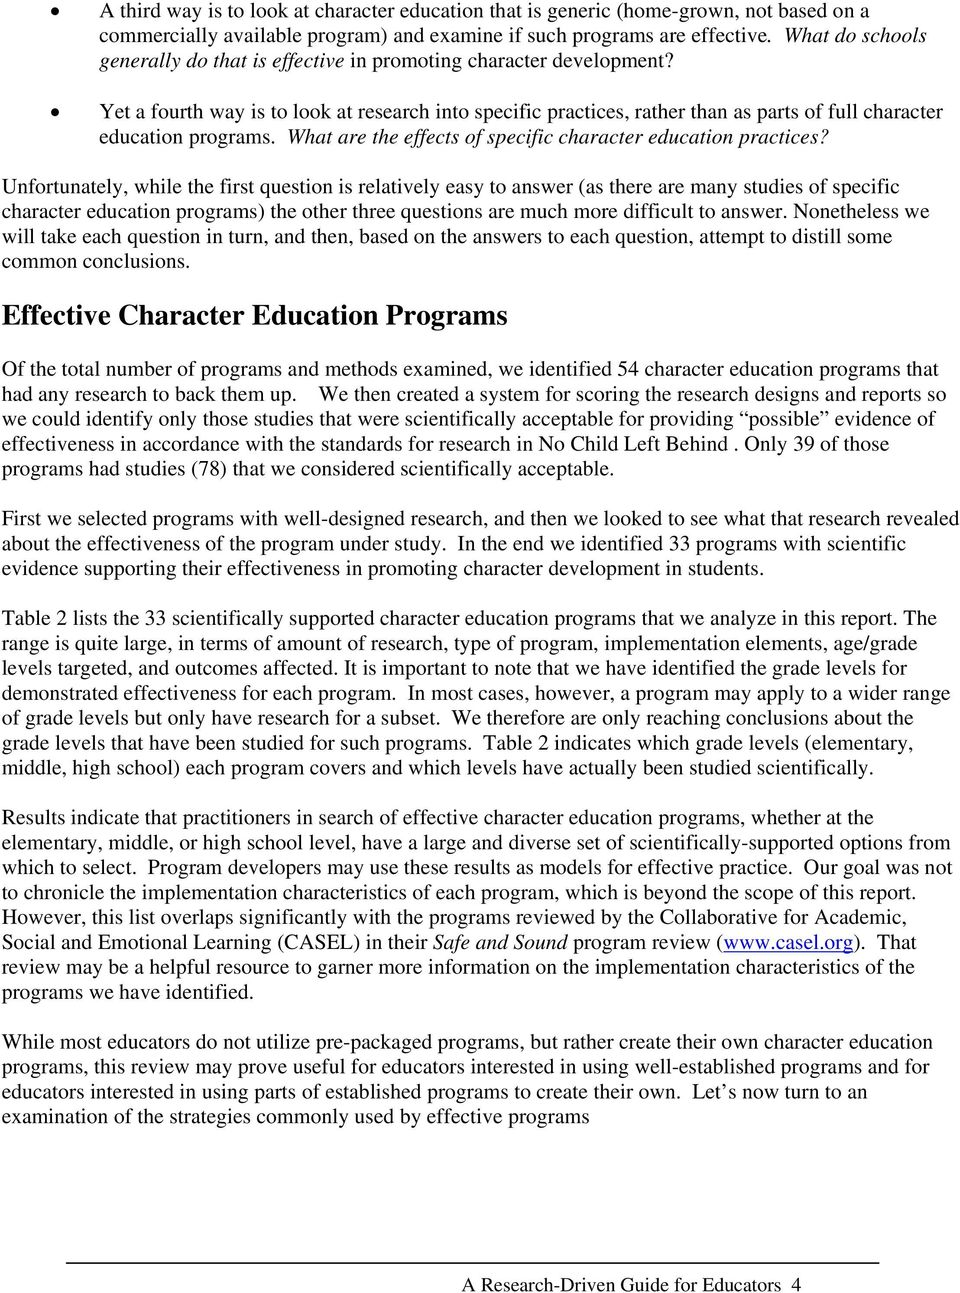 Yet a fourth way is to look at research into specific practices, rather than as parts of full character education programs. What are the effects of specific character education practices?